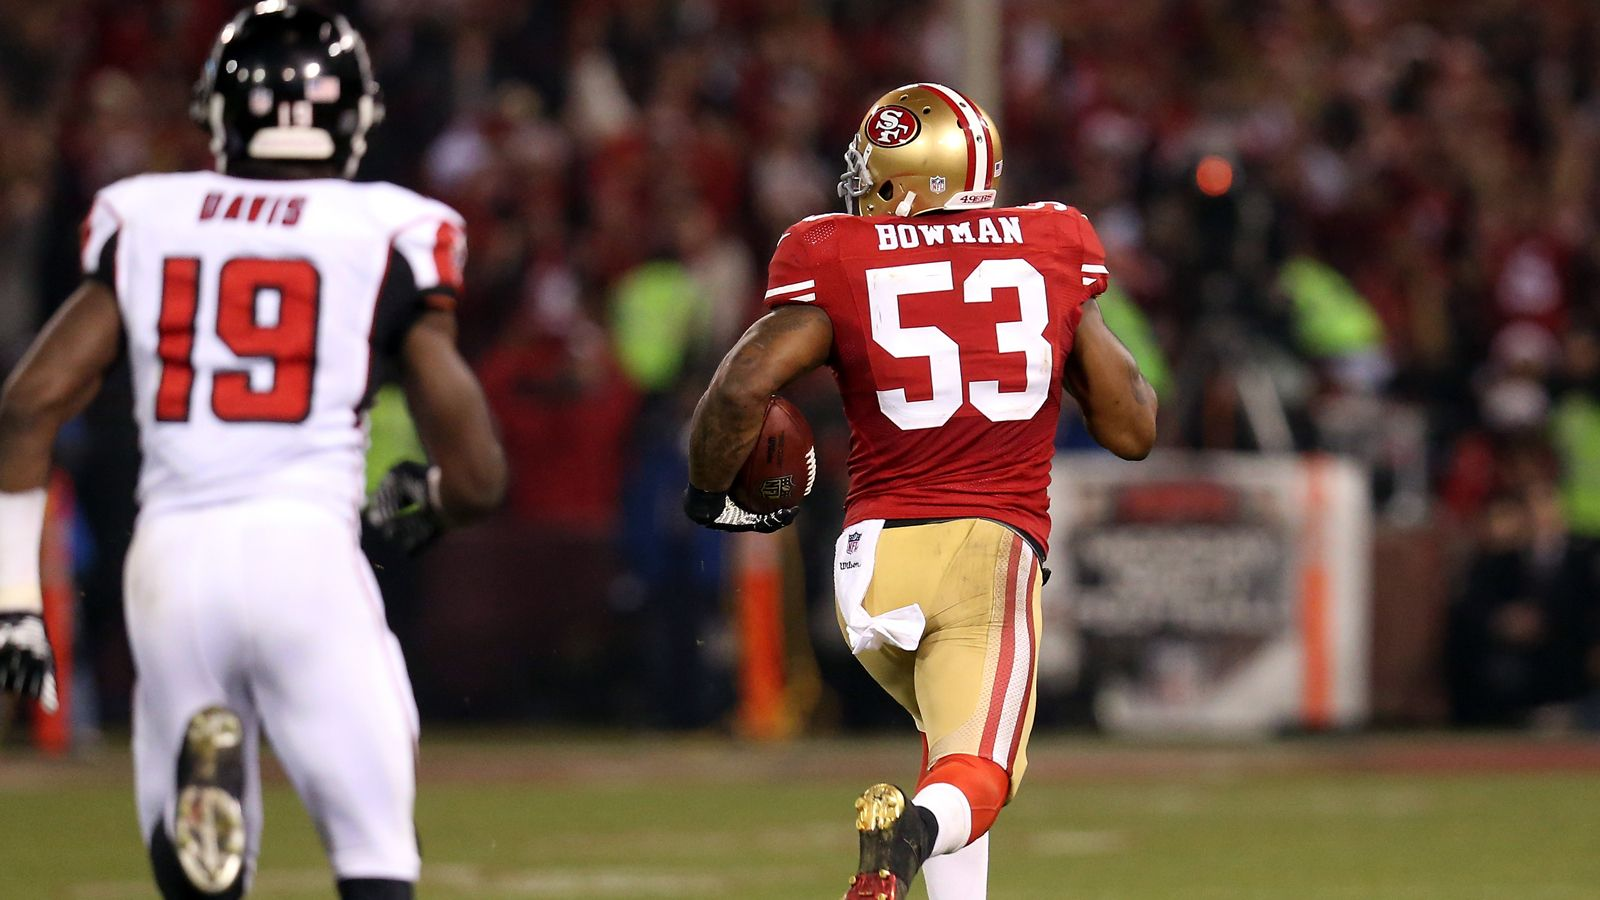 49ers Navorro Bowman Epic Finish Picture Wallpaper Nfl Football 49ers Navorro Bowman 49ers